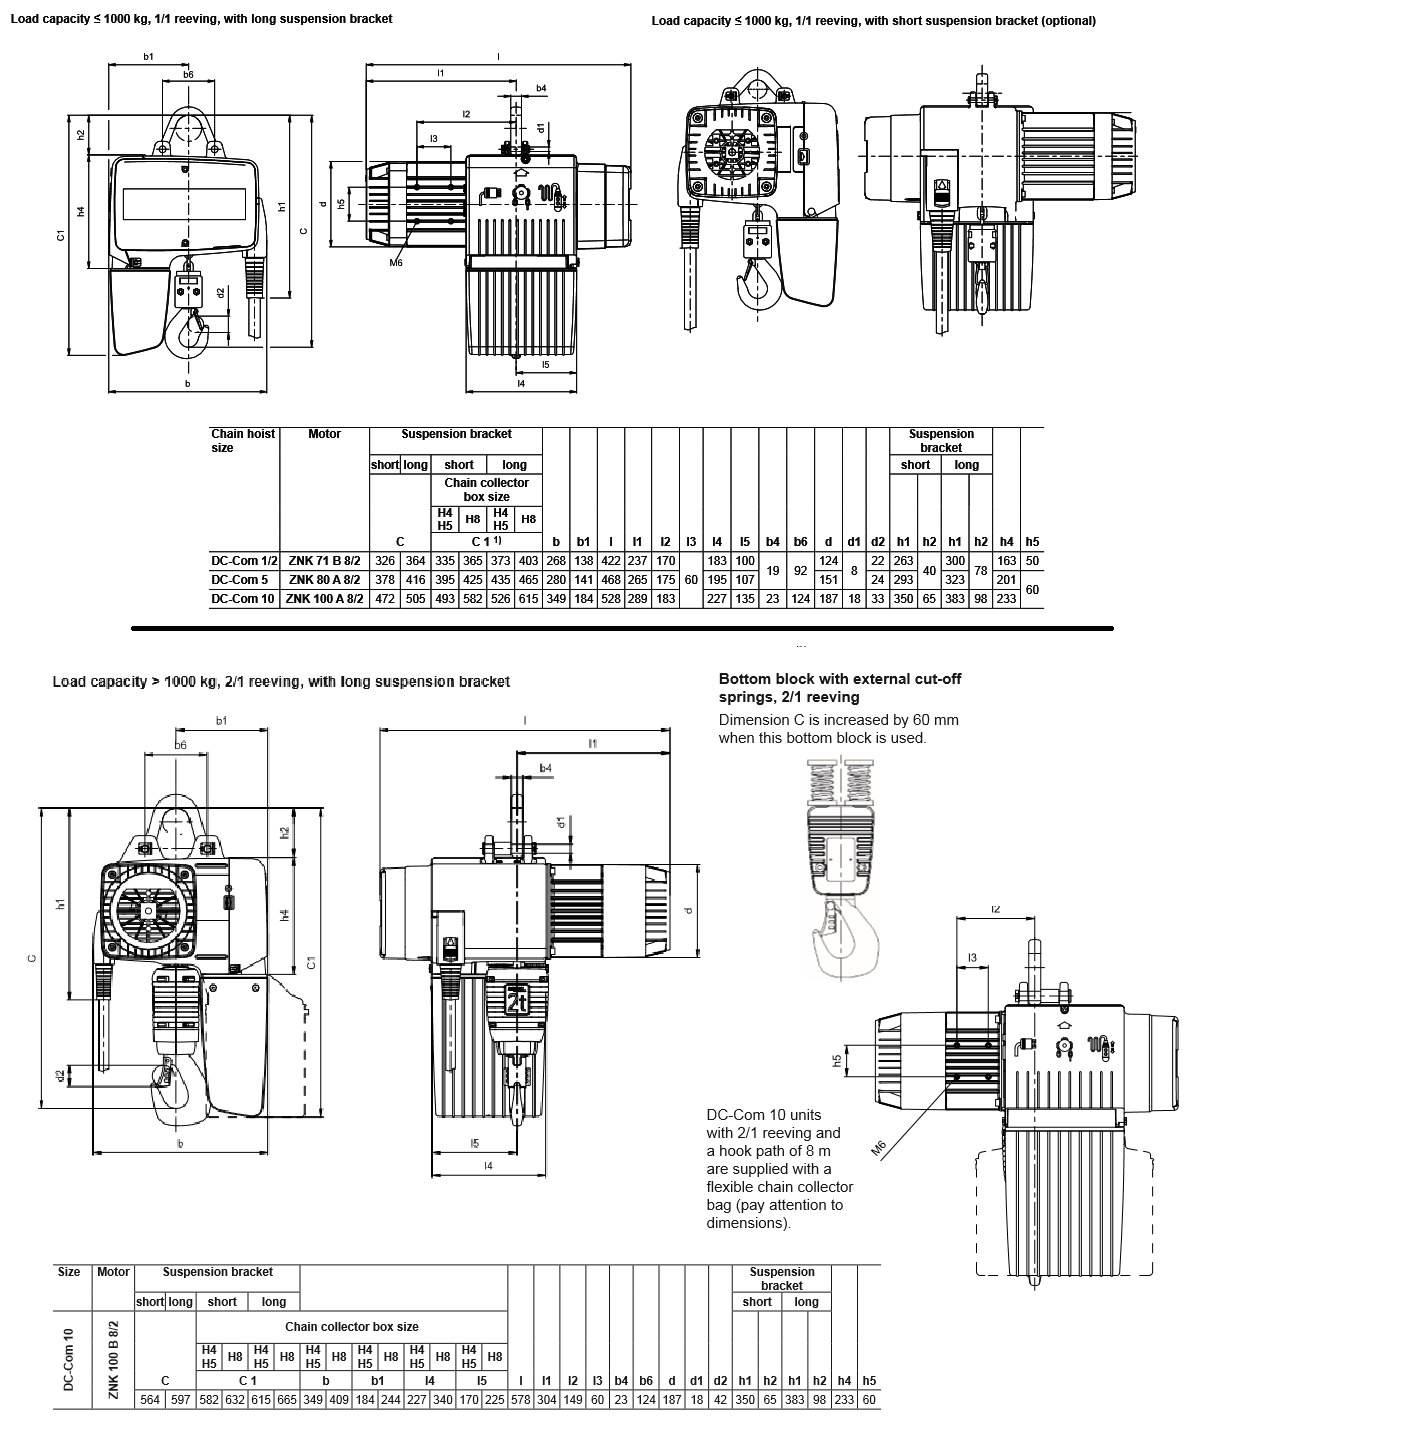 [DIAGRAM_38DE]  Demag DC-Com Electric Hoist | Buy Demag Chain Hoists | Lifting Gear Direct | Demag Dc Chain Hoist Diagram |  | Lifting Gear Direct